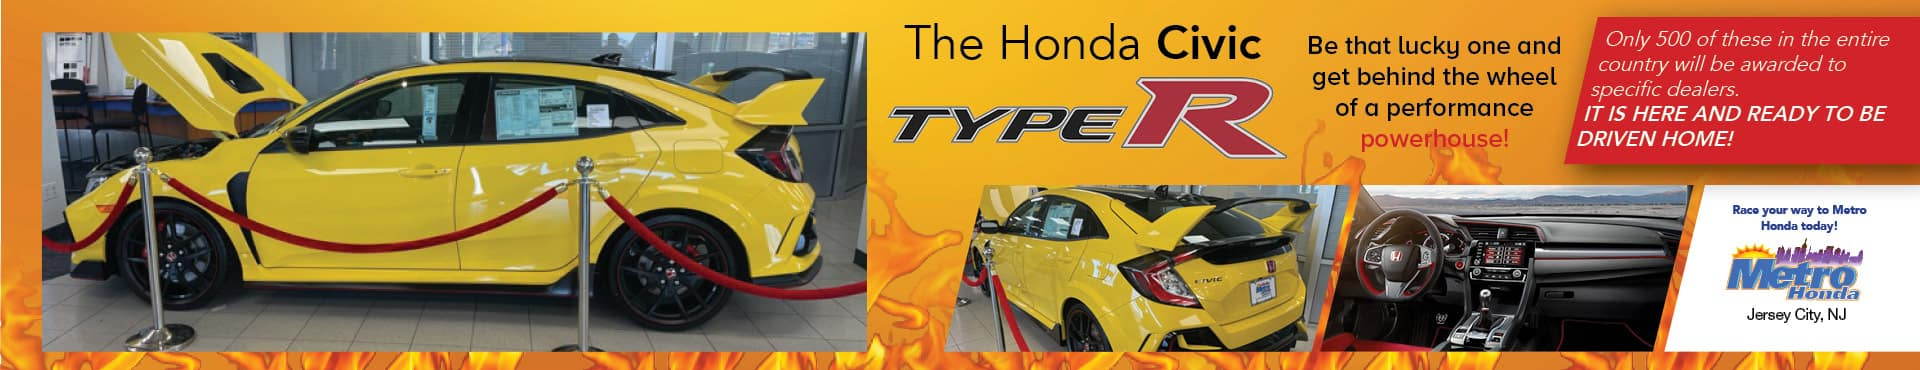 MetHon-1206 Civic Type R website banner ads: FCBK banners 4